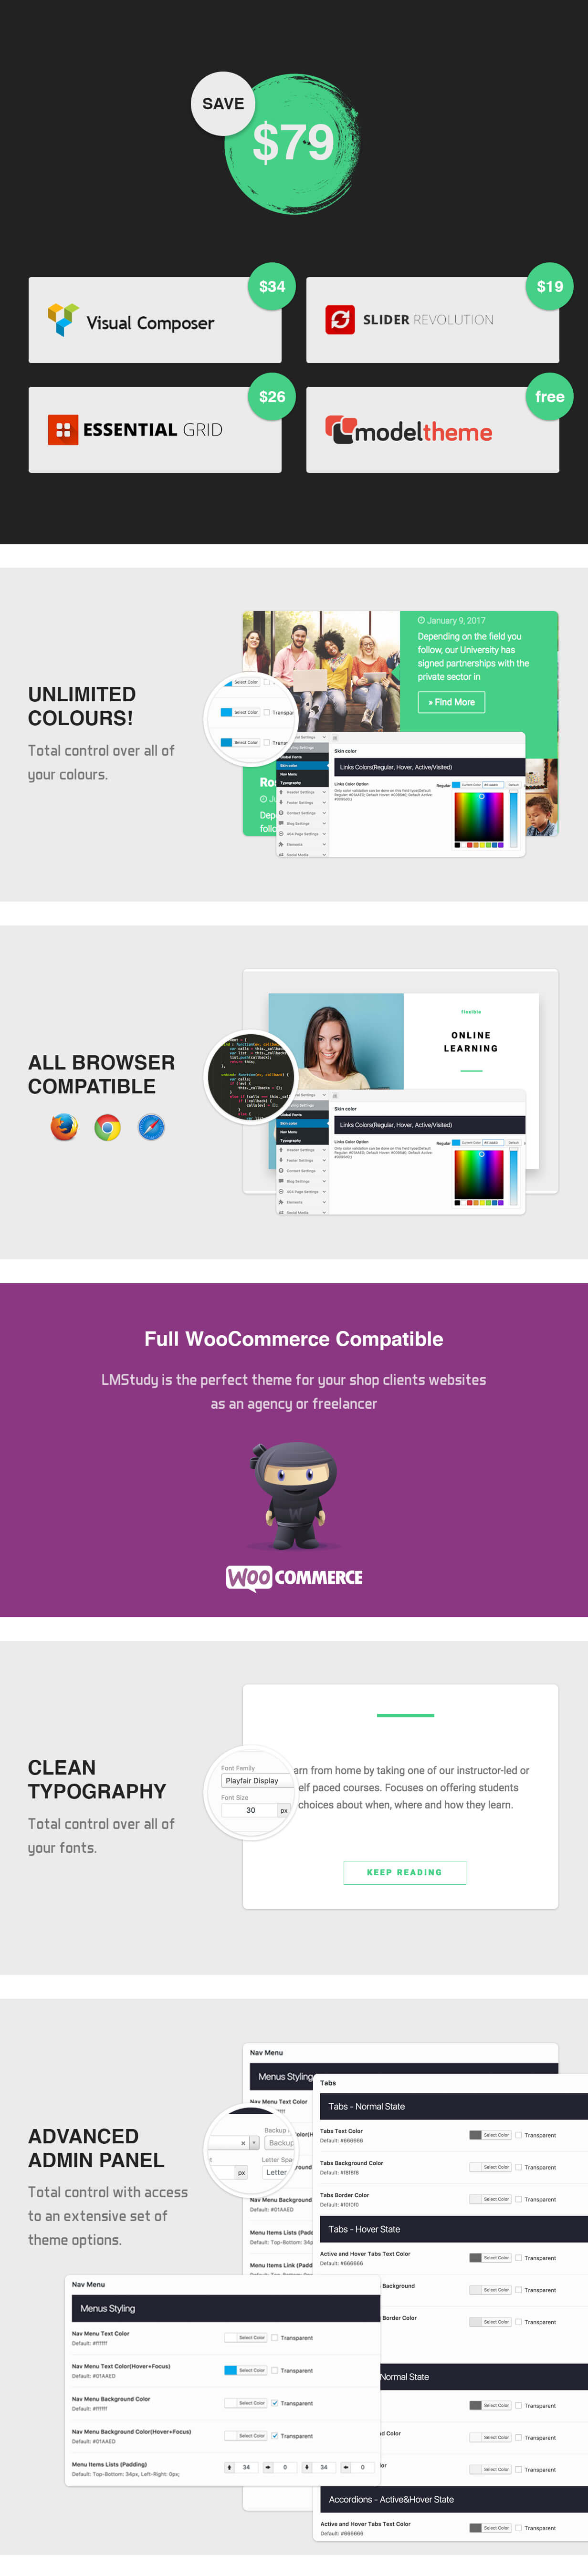 LMStudy - Course / Learning / Education LMS WooCommerce Theme - 5